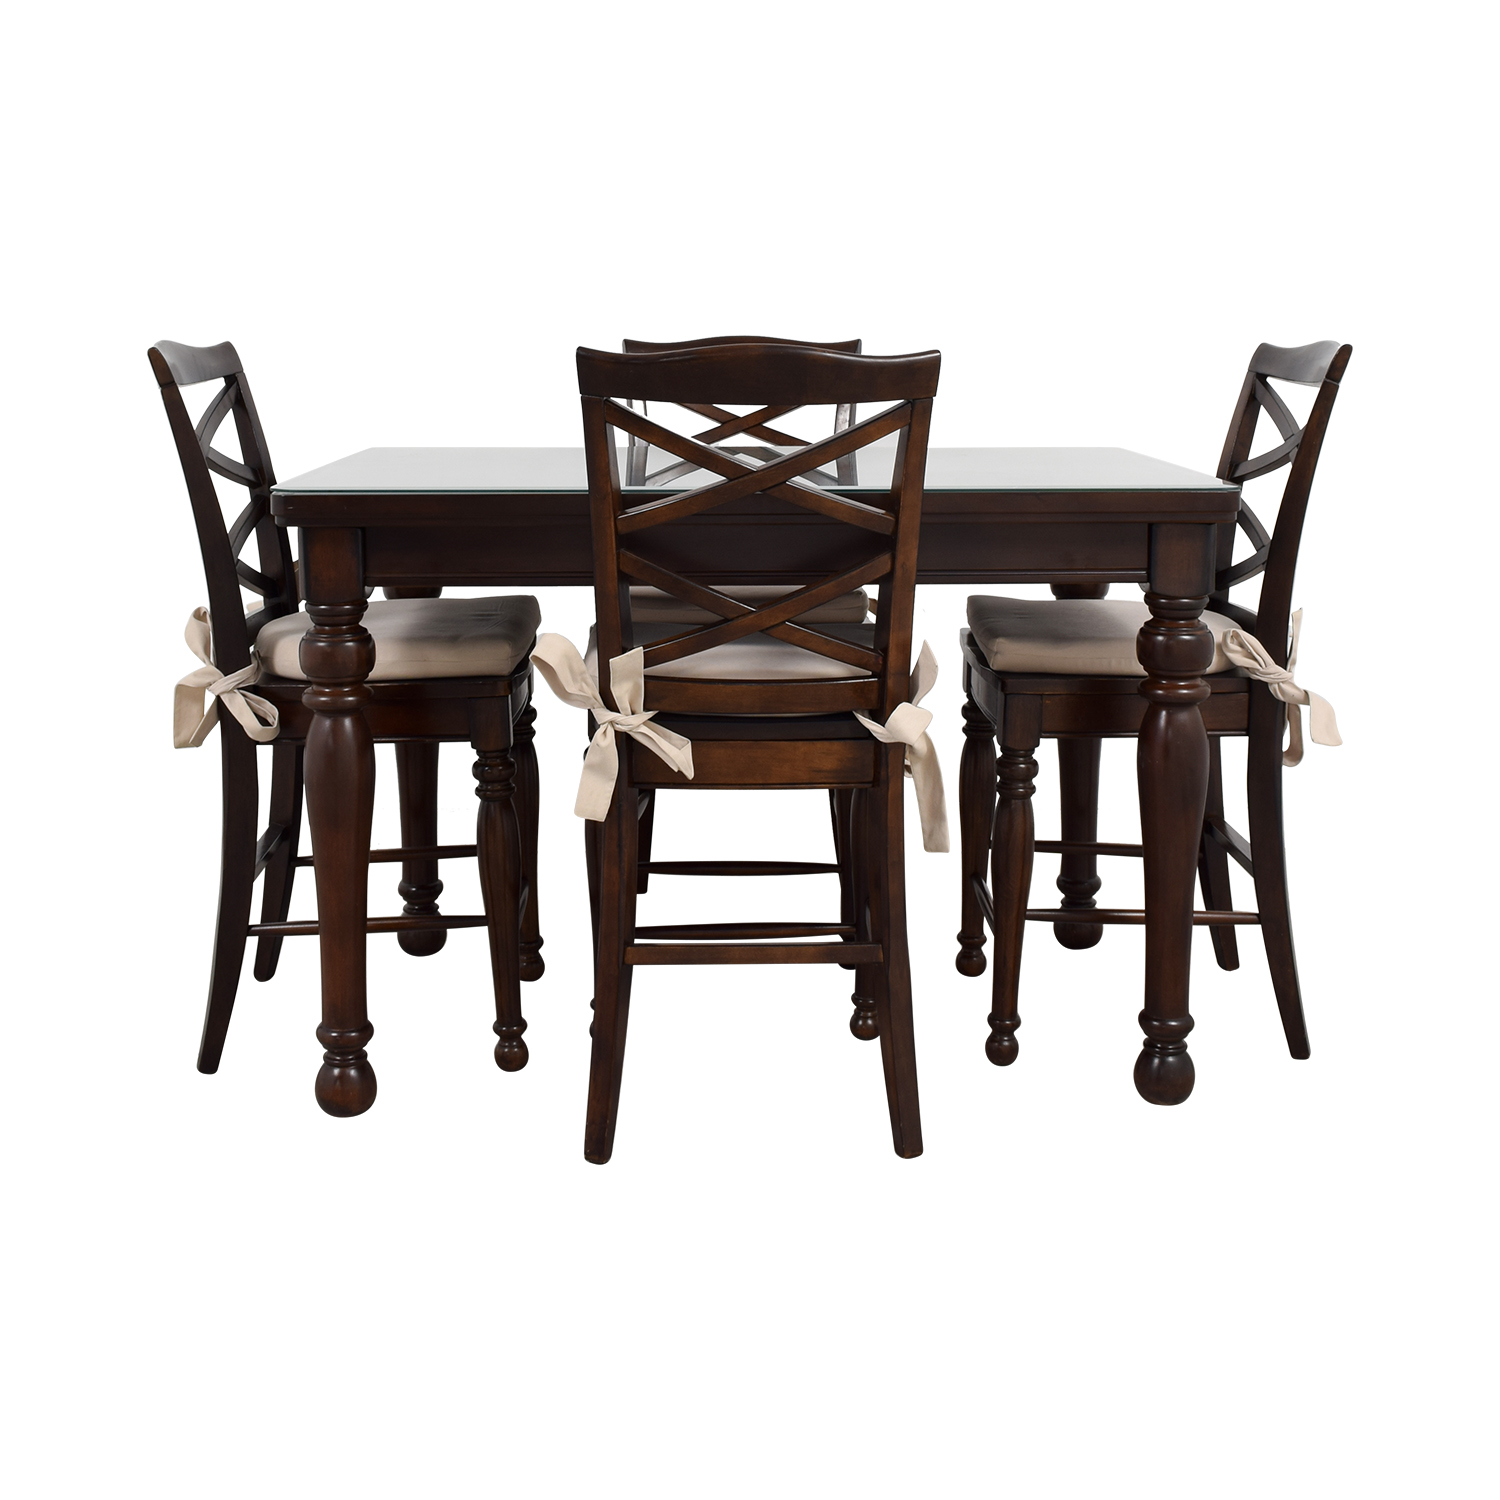 Ashley Furniture Ashley Furniture Dark Wood Dining Set with Seat Cushions nyc